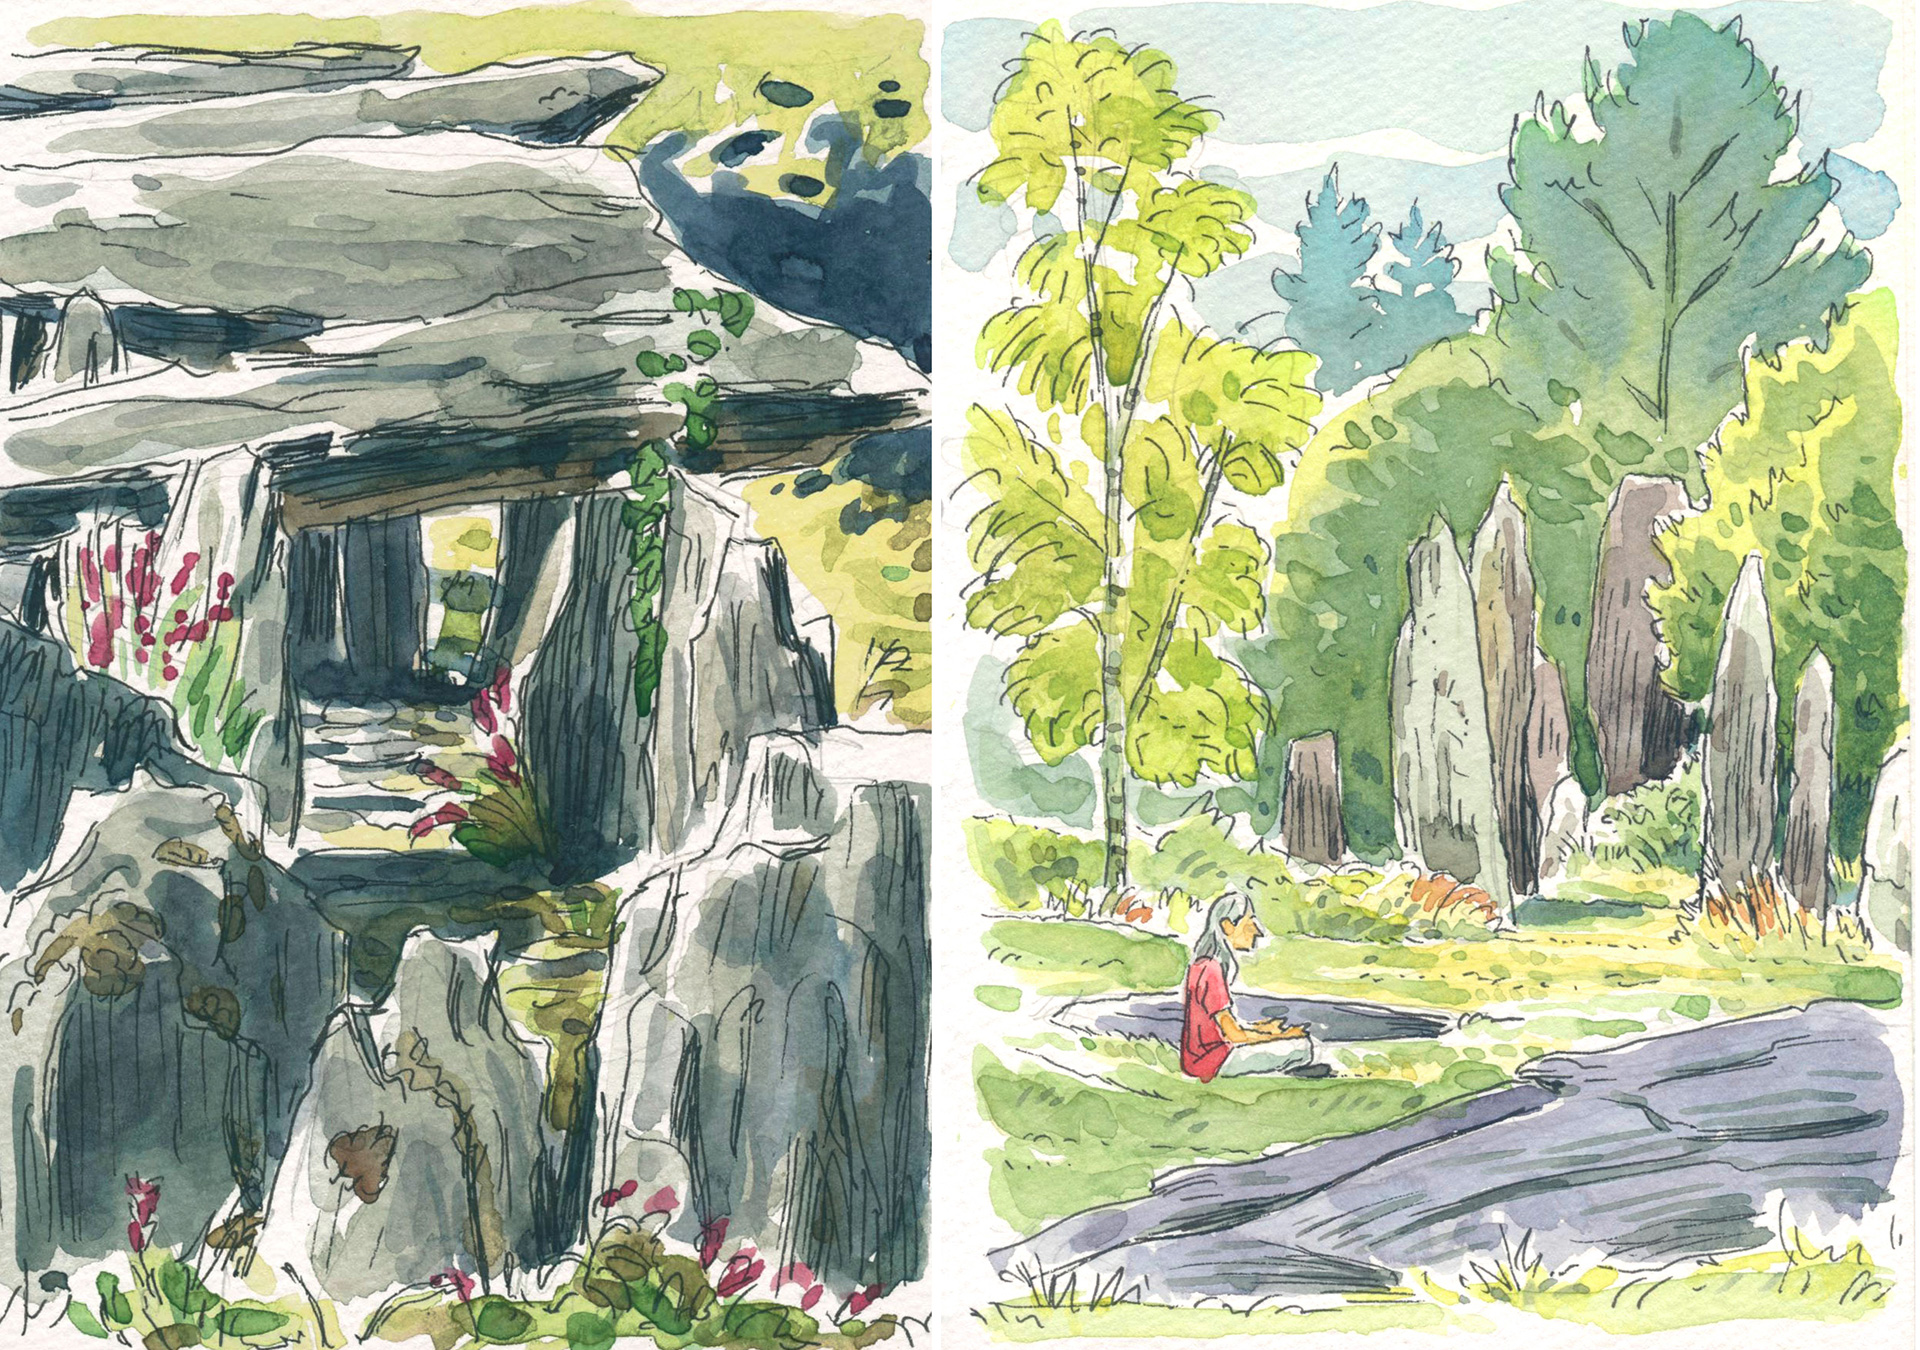 megaliths watercolor sketches